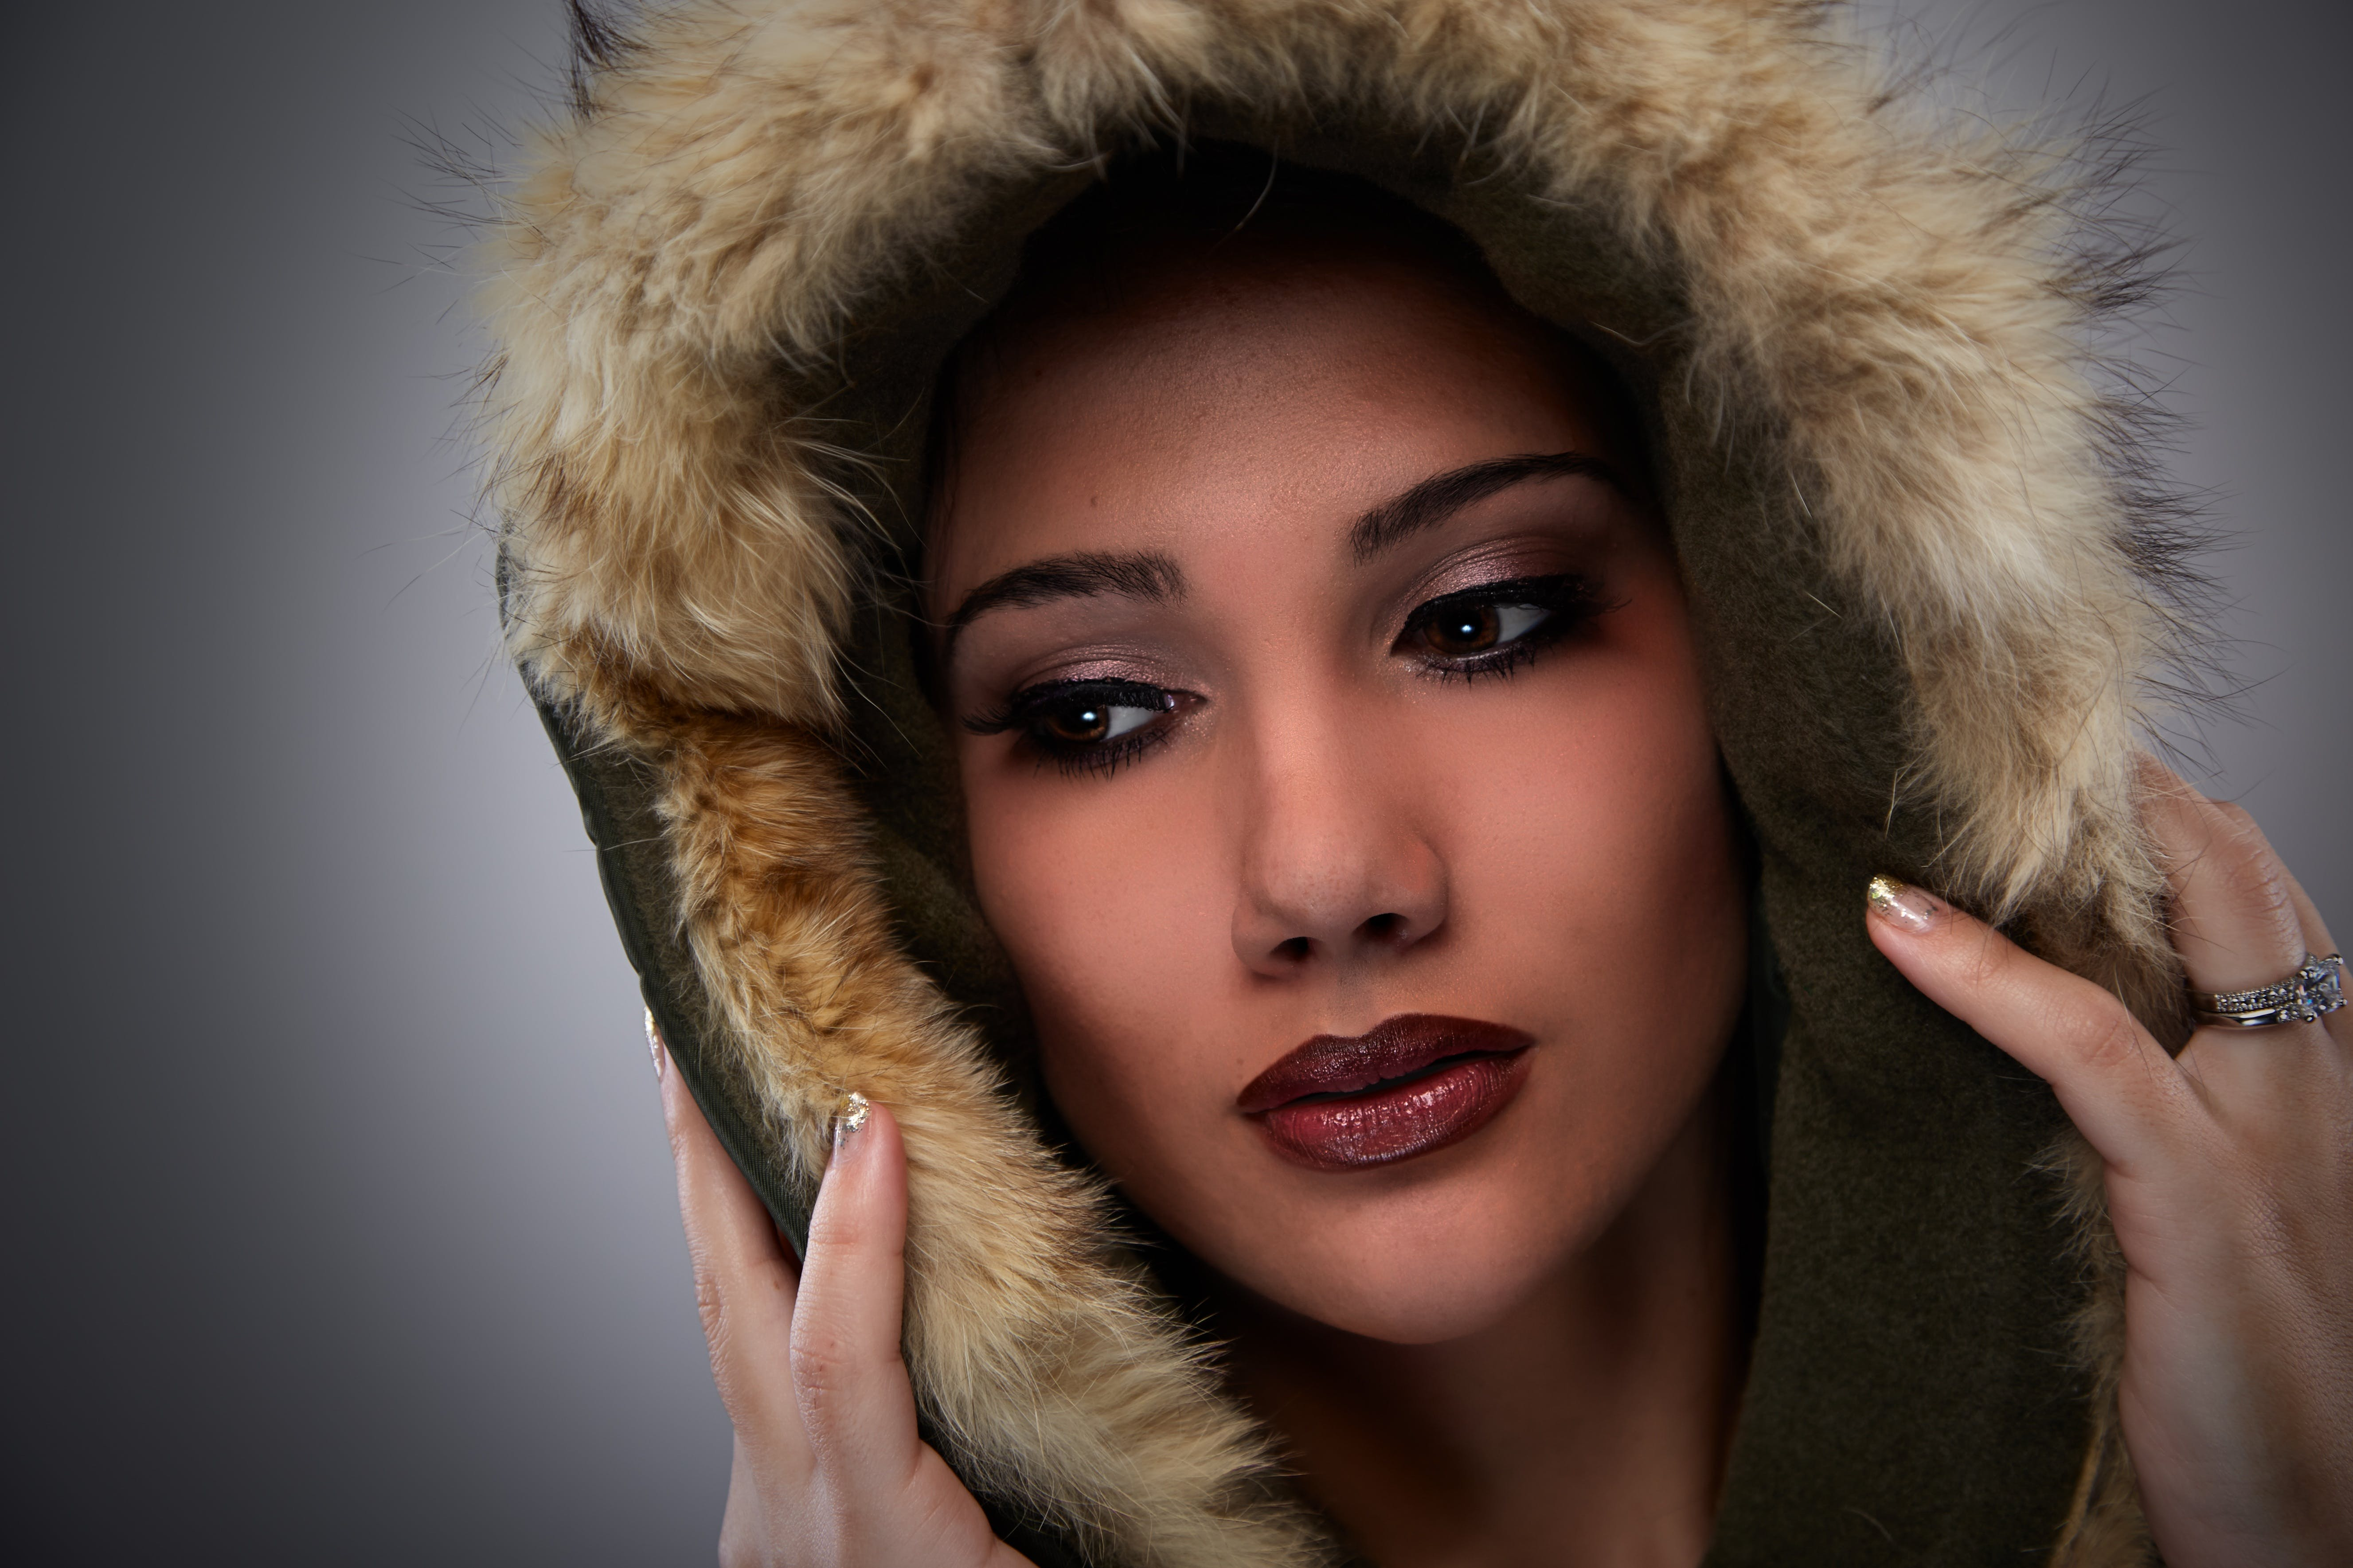 Woman on Black Mascara Red Lipstick Cover Her Face With Brown Fur Coat